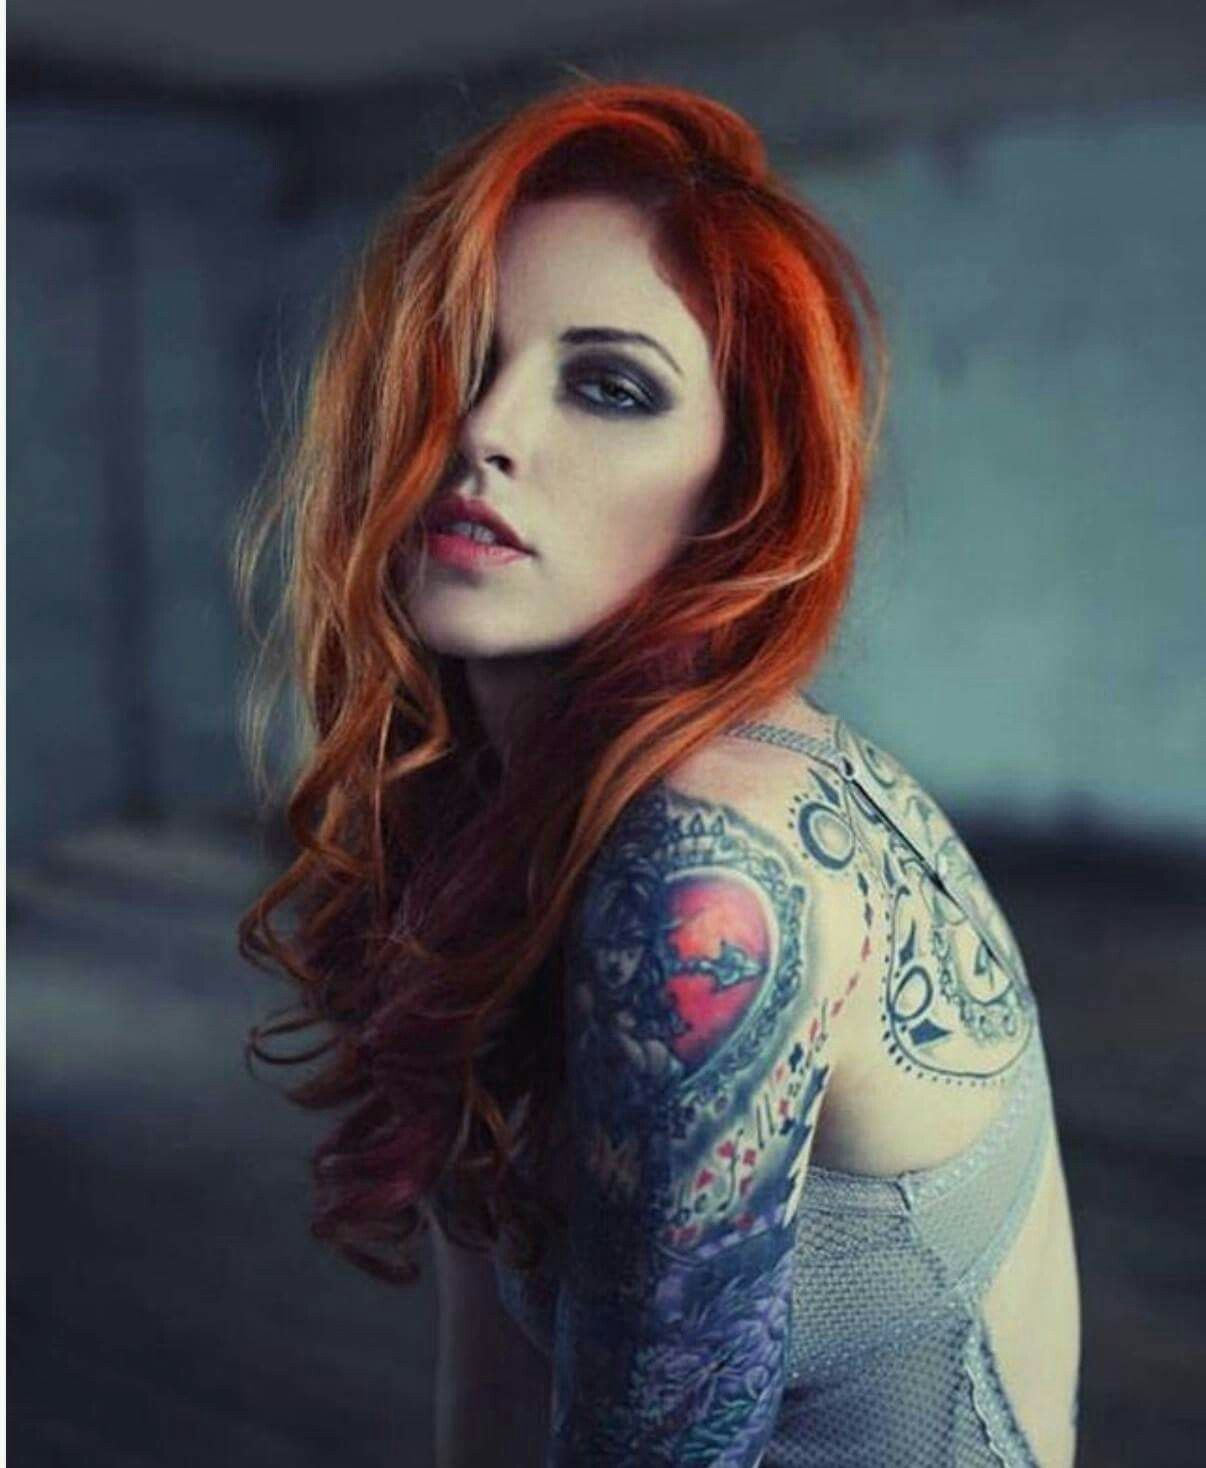 Thought differently, anna miller with redhead speak this